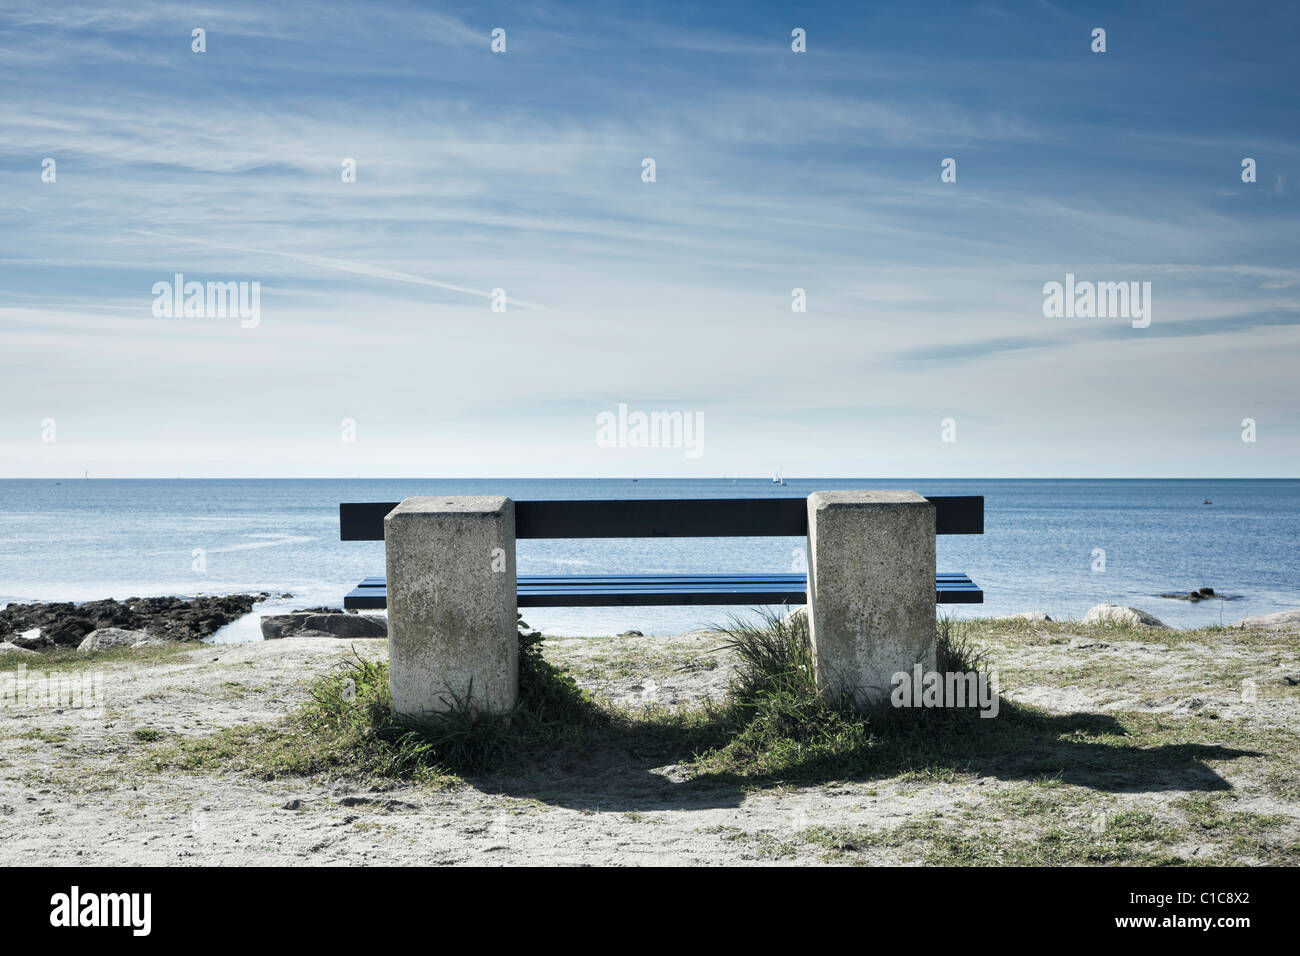 Bench overlooking the ocean, France, Europe - Stock Image